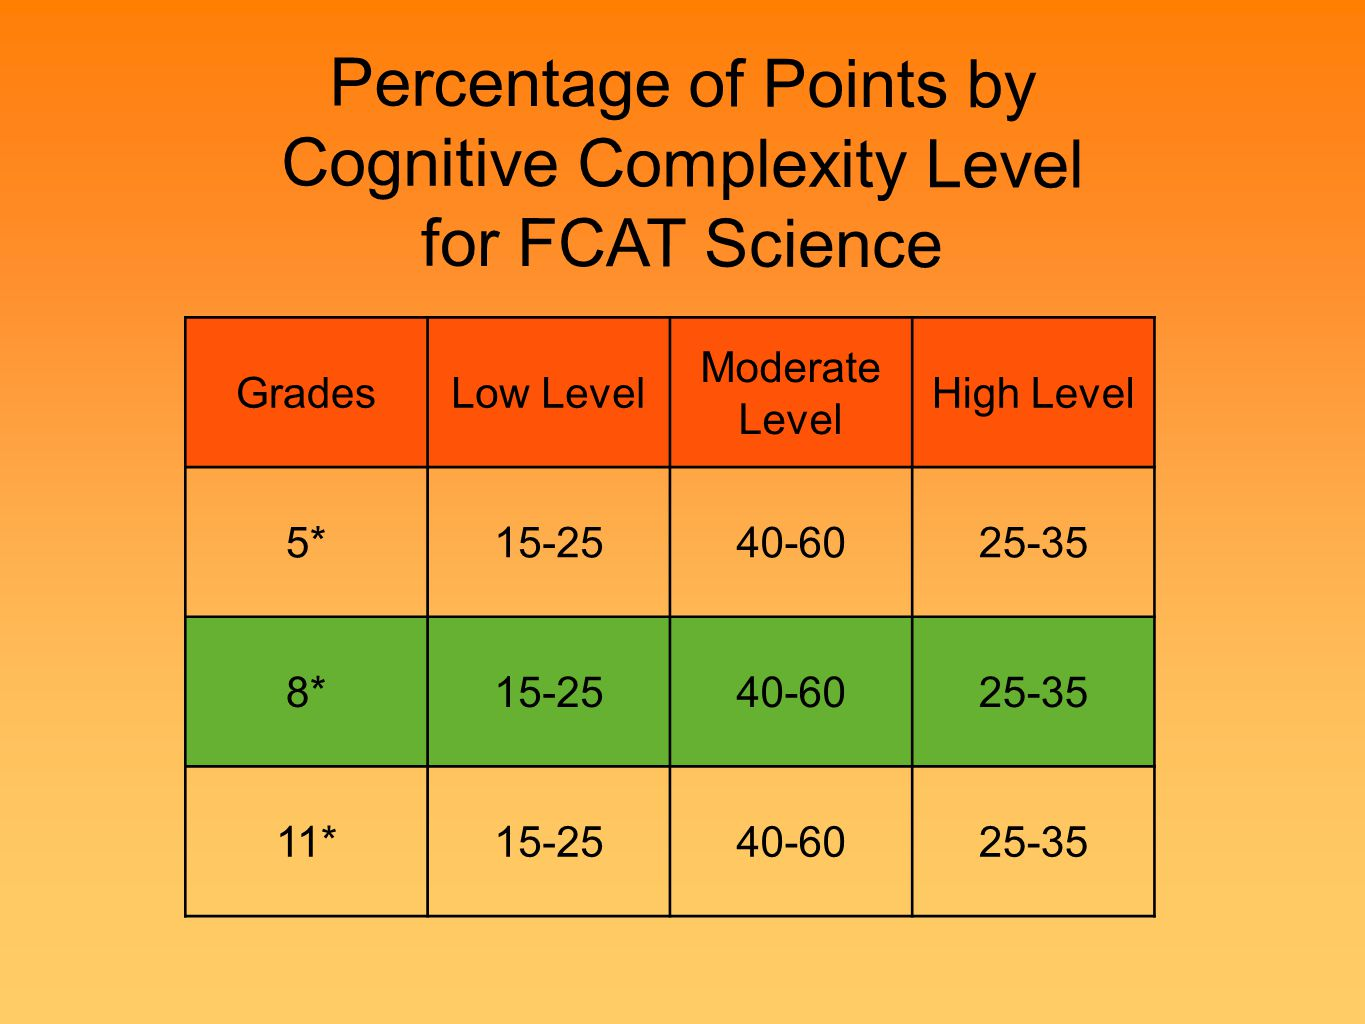 Percentage of Points by Cognitive Complexity Level for FCAT Science